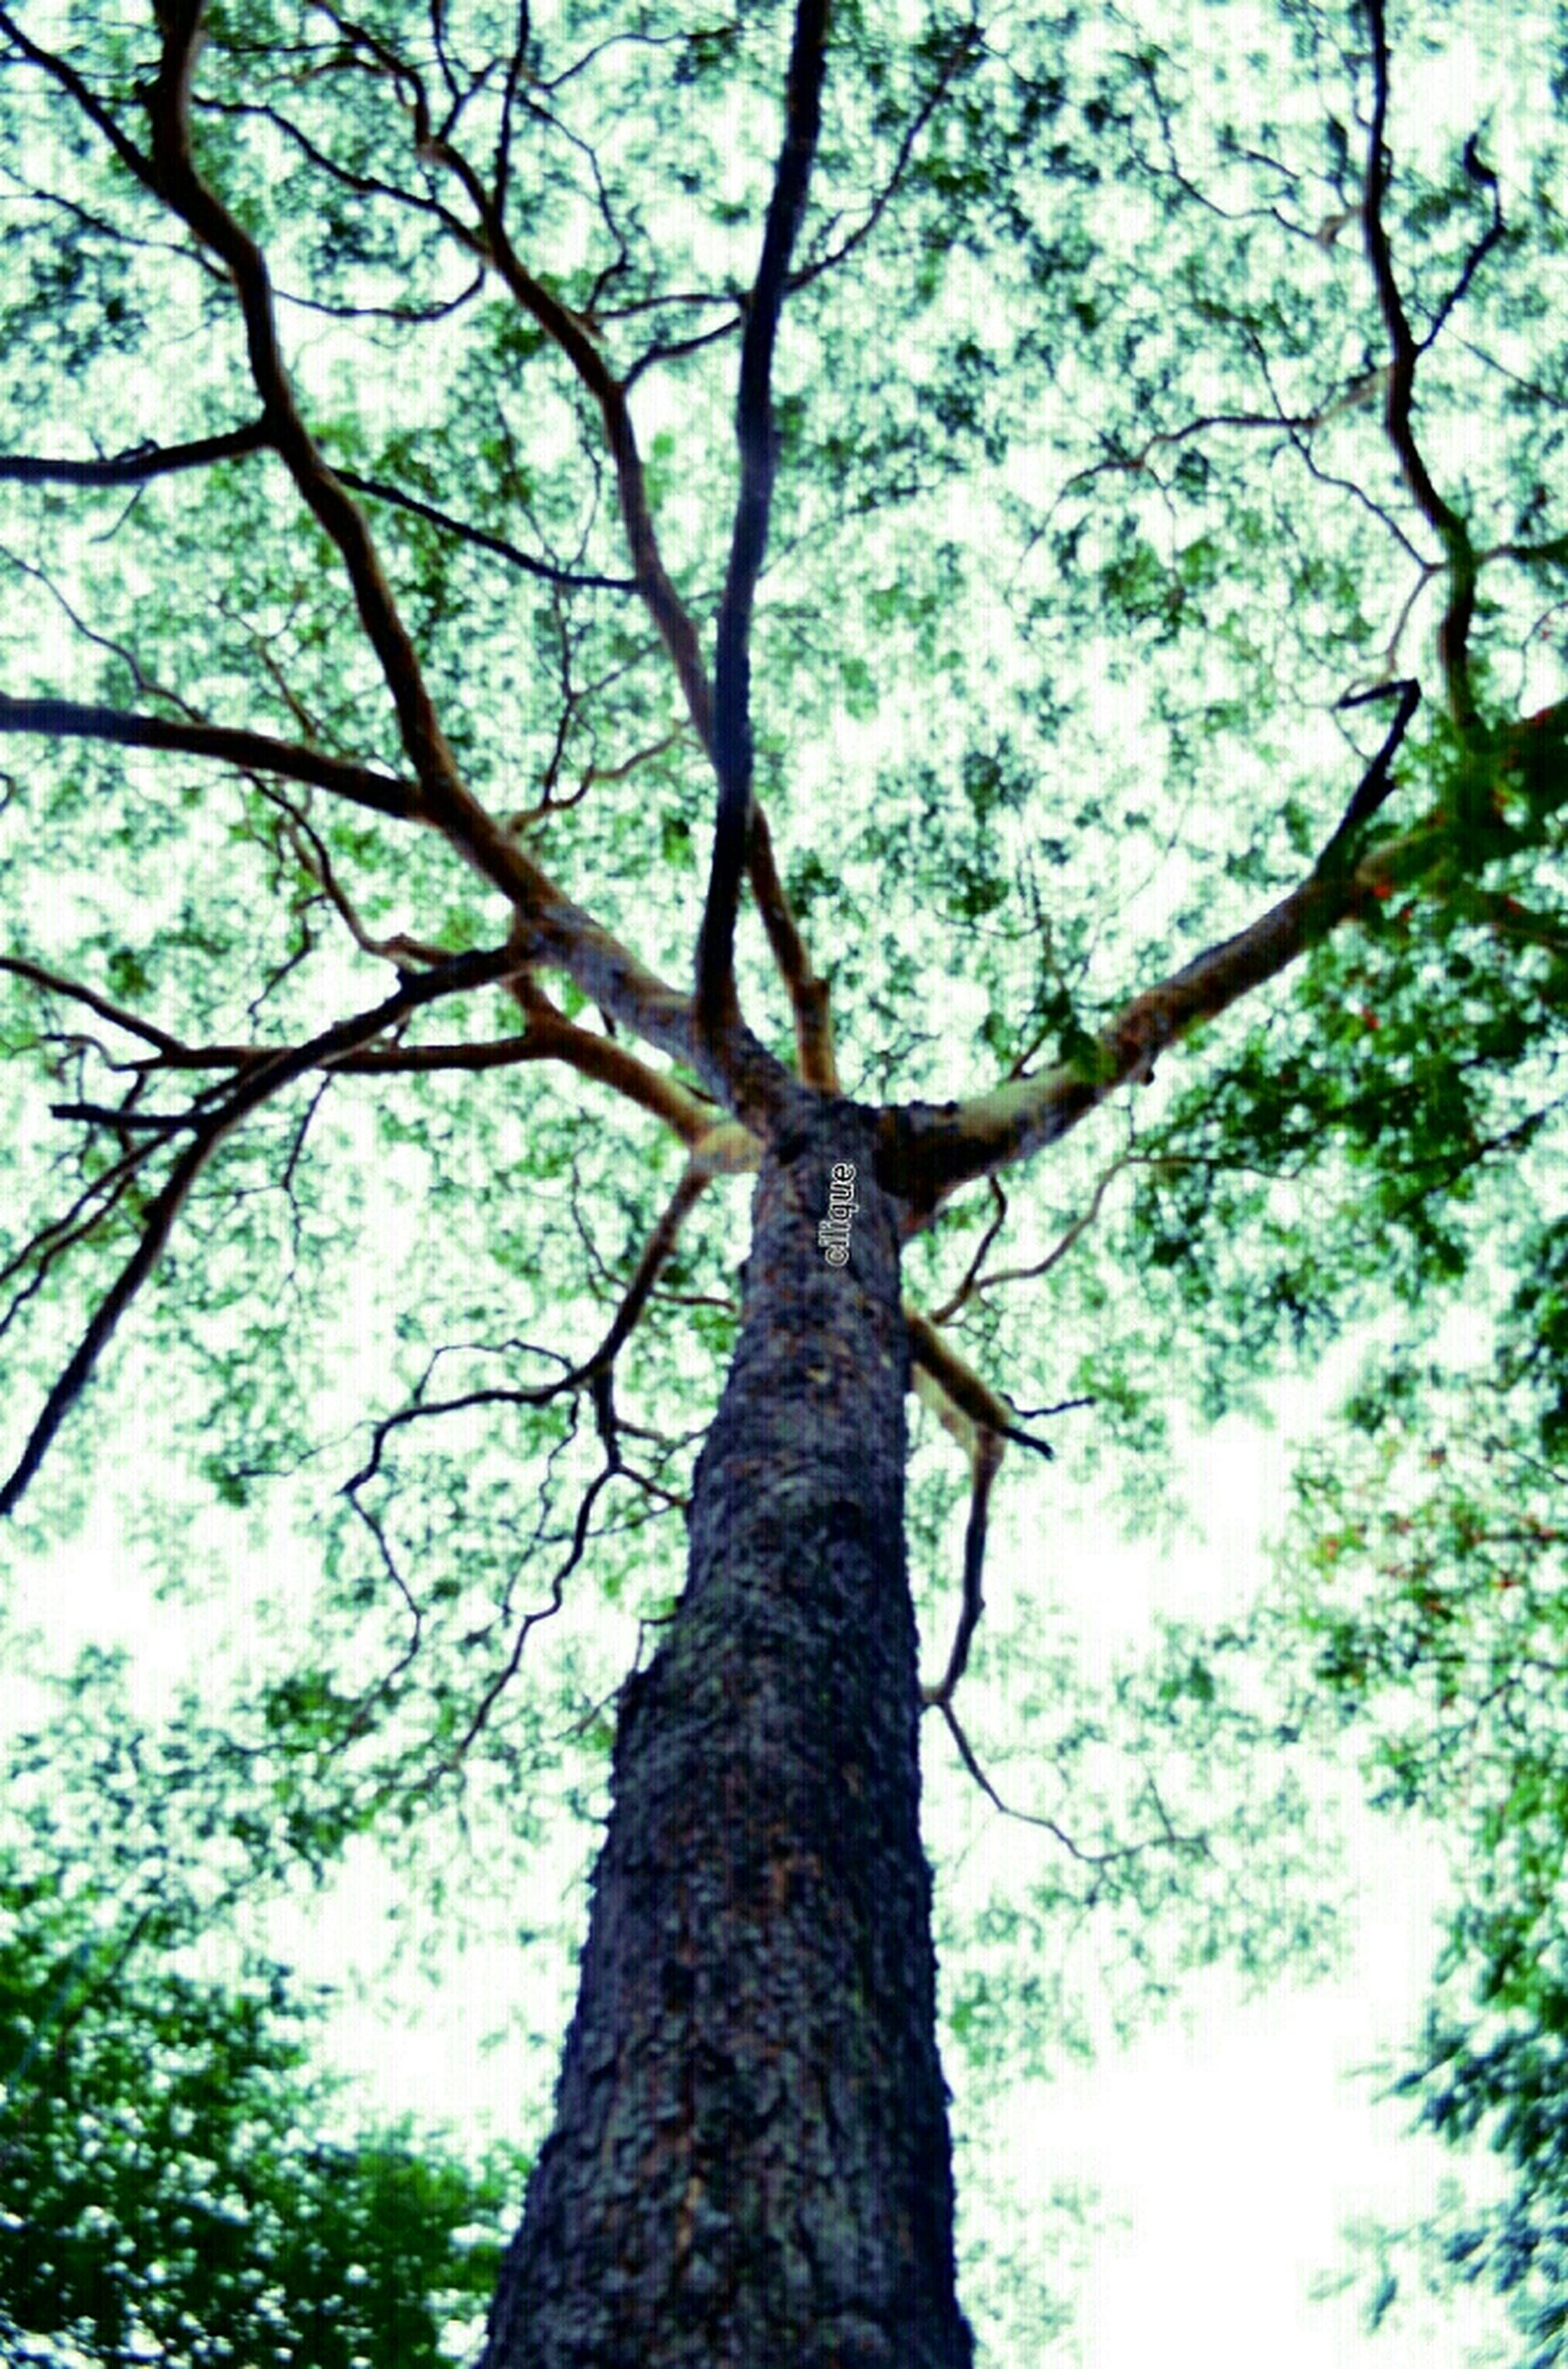 tree, low angle view, branch, tree trunk, growth, nature, tranquility, beauty in nature, sky, day, outdoors, backgrounds, no people, bark, forest, close-up, full frame, scenics, textured, sunlight